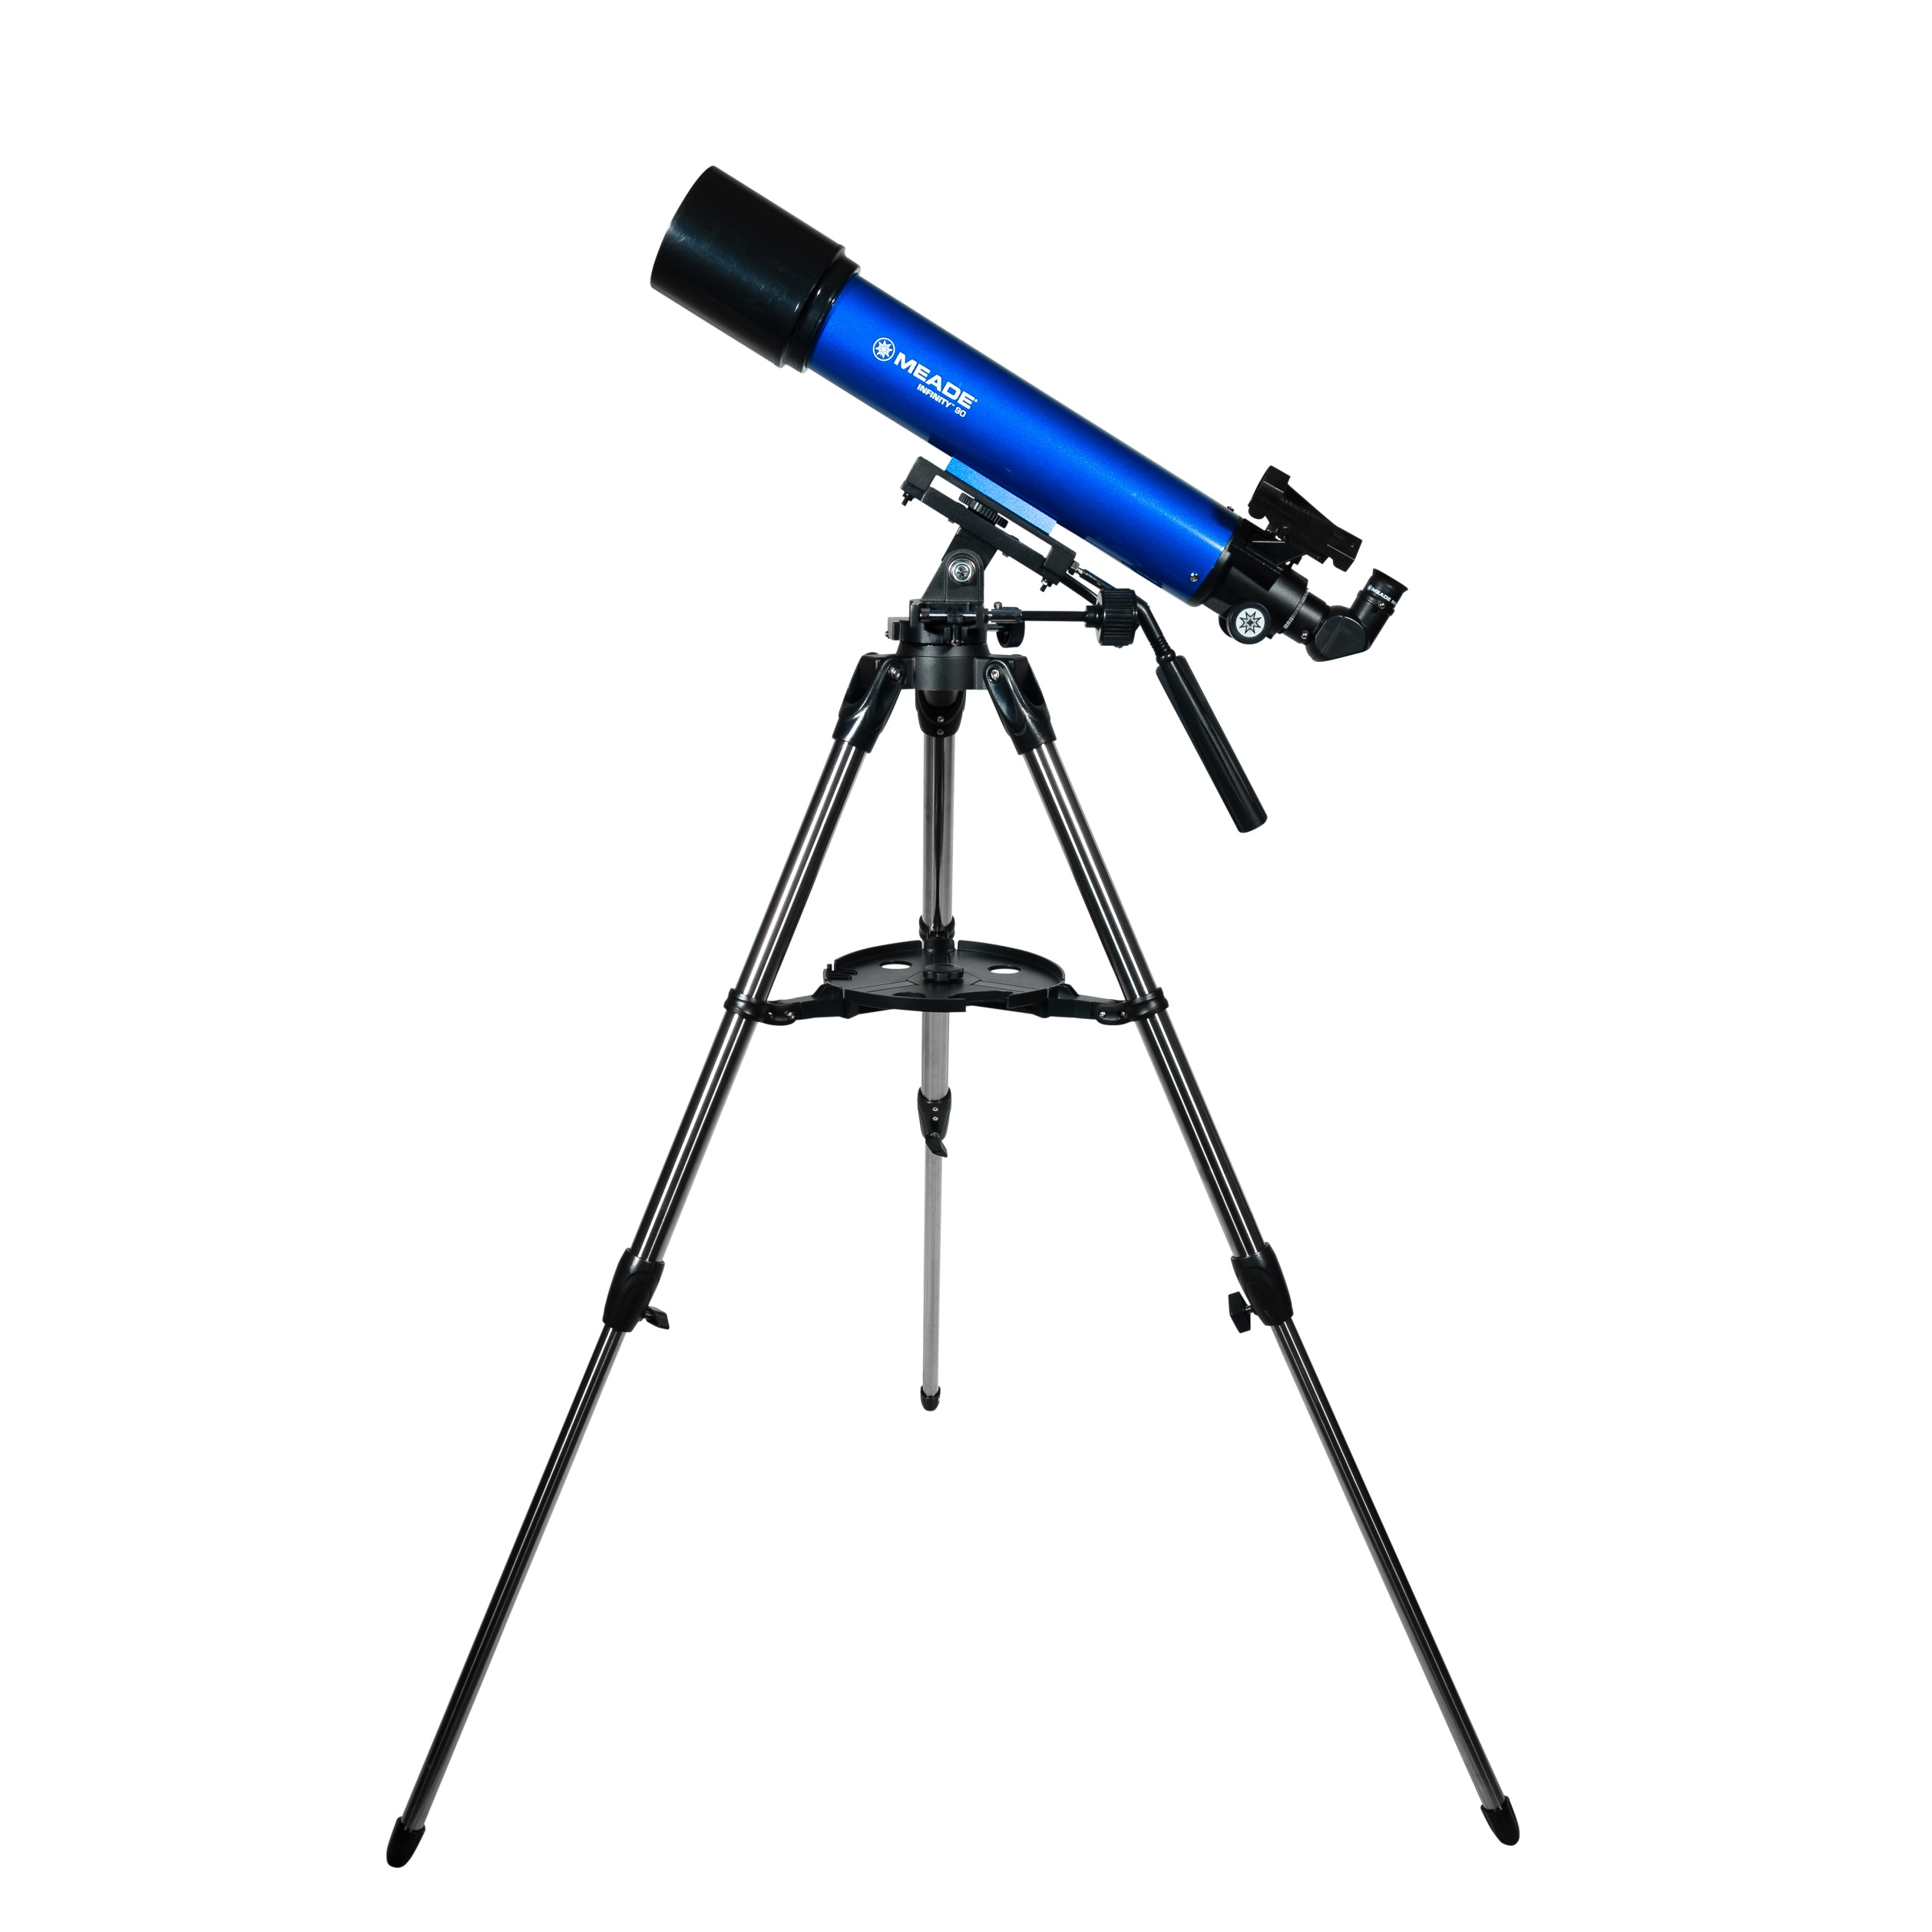 90mm telescope